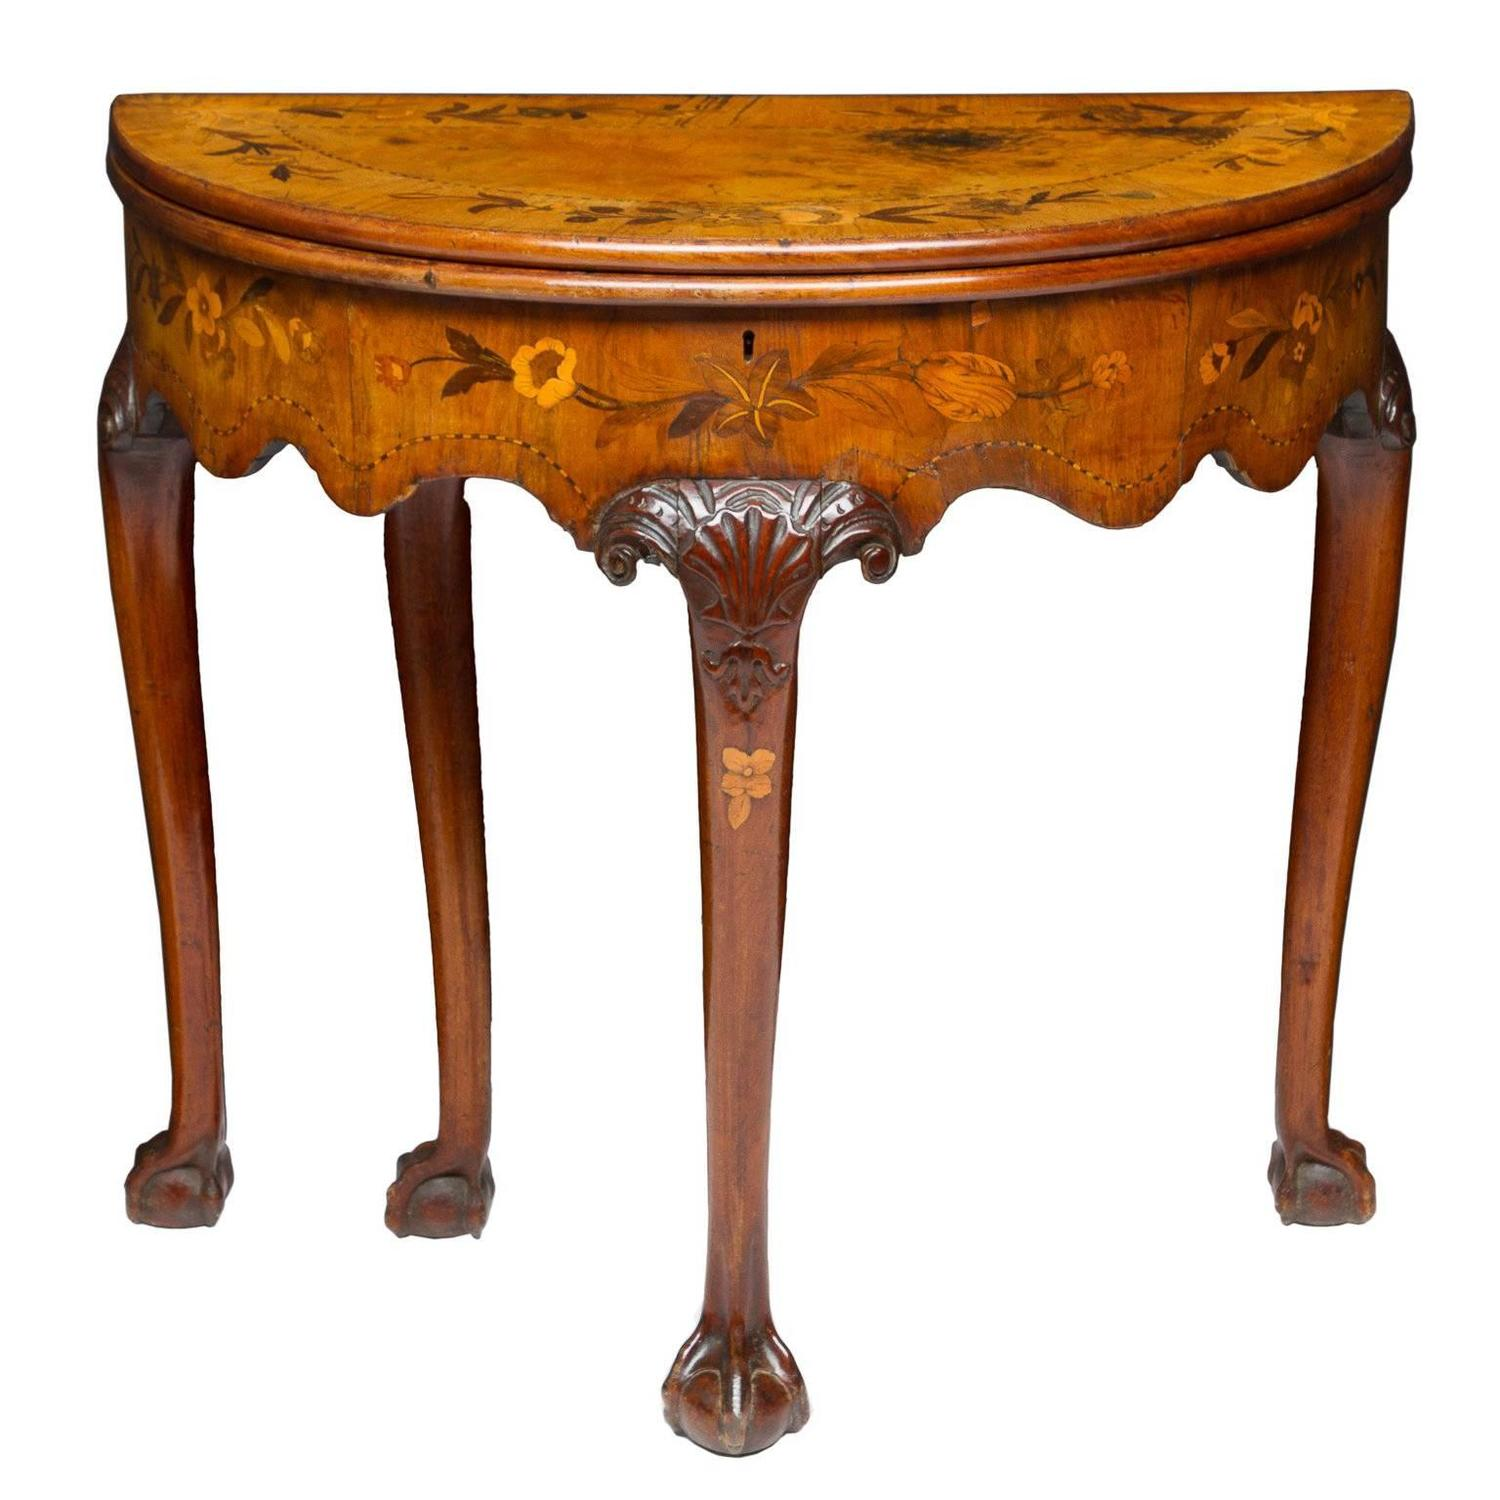 19th Century Dutch Marquetry Inlaid Flip Top Game Table